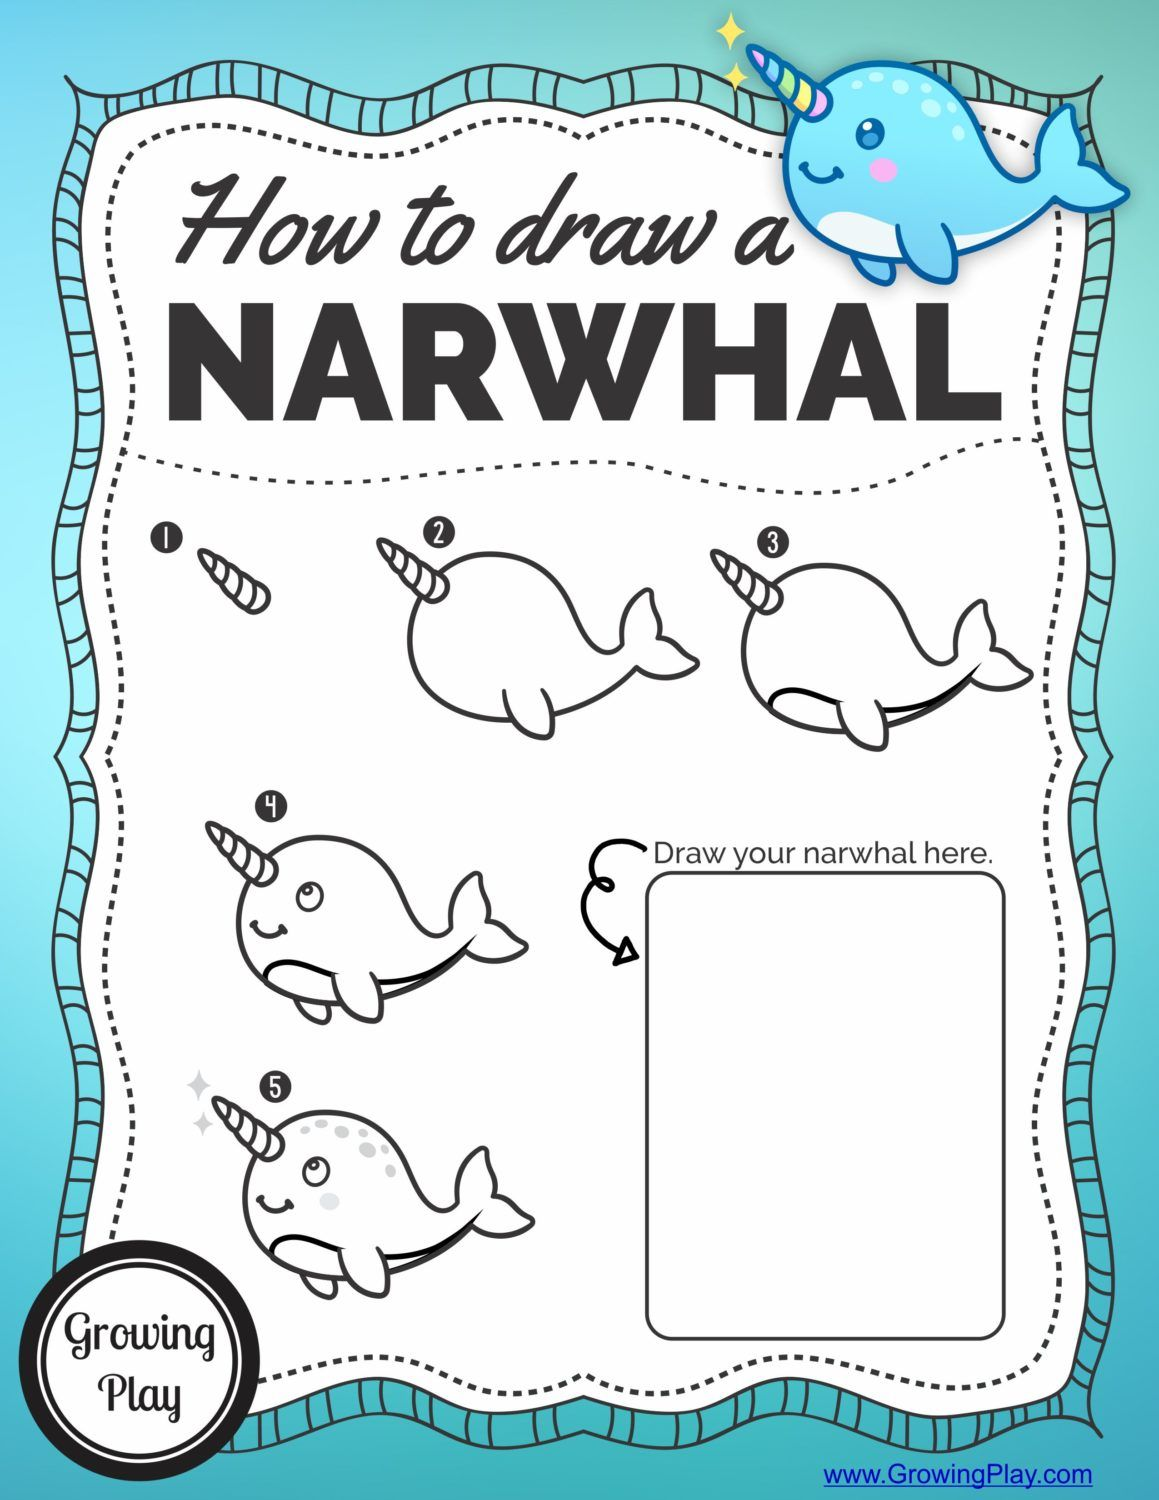 Image of: Cute Isnt This Narwhal Just Adorable Thought It Was Super Cute And Easy Three Horn Unicorn Press How To Draw Narwhal Free Printable Just Looks Like Fun